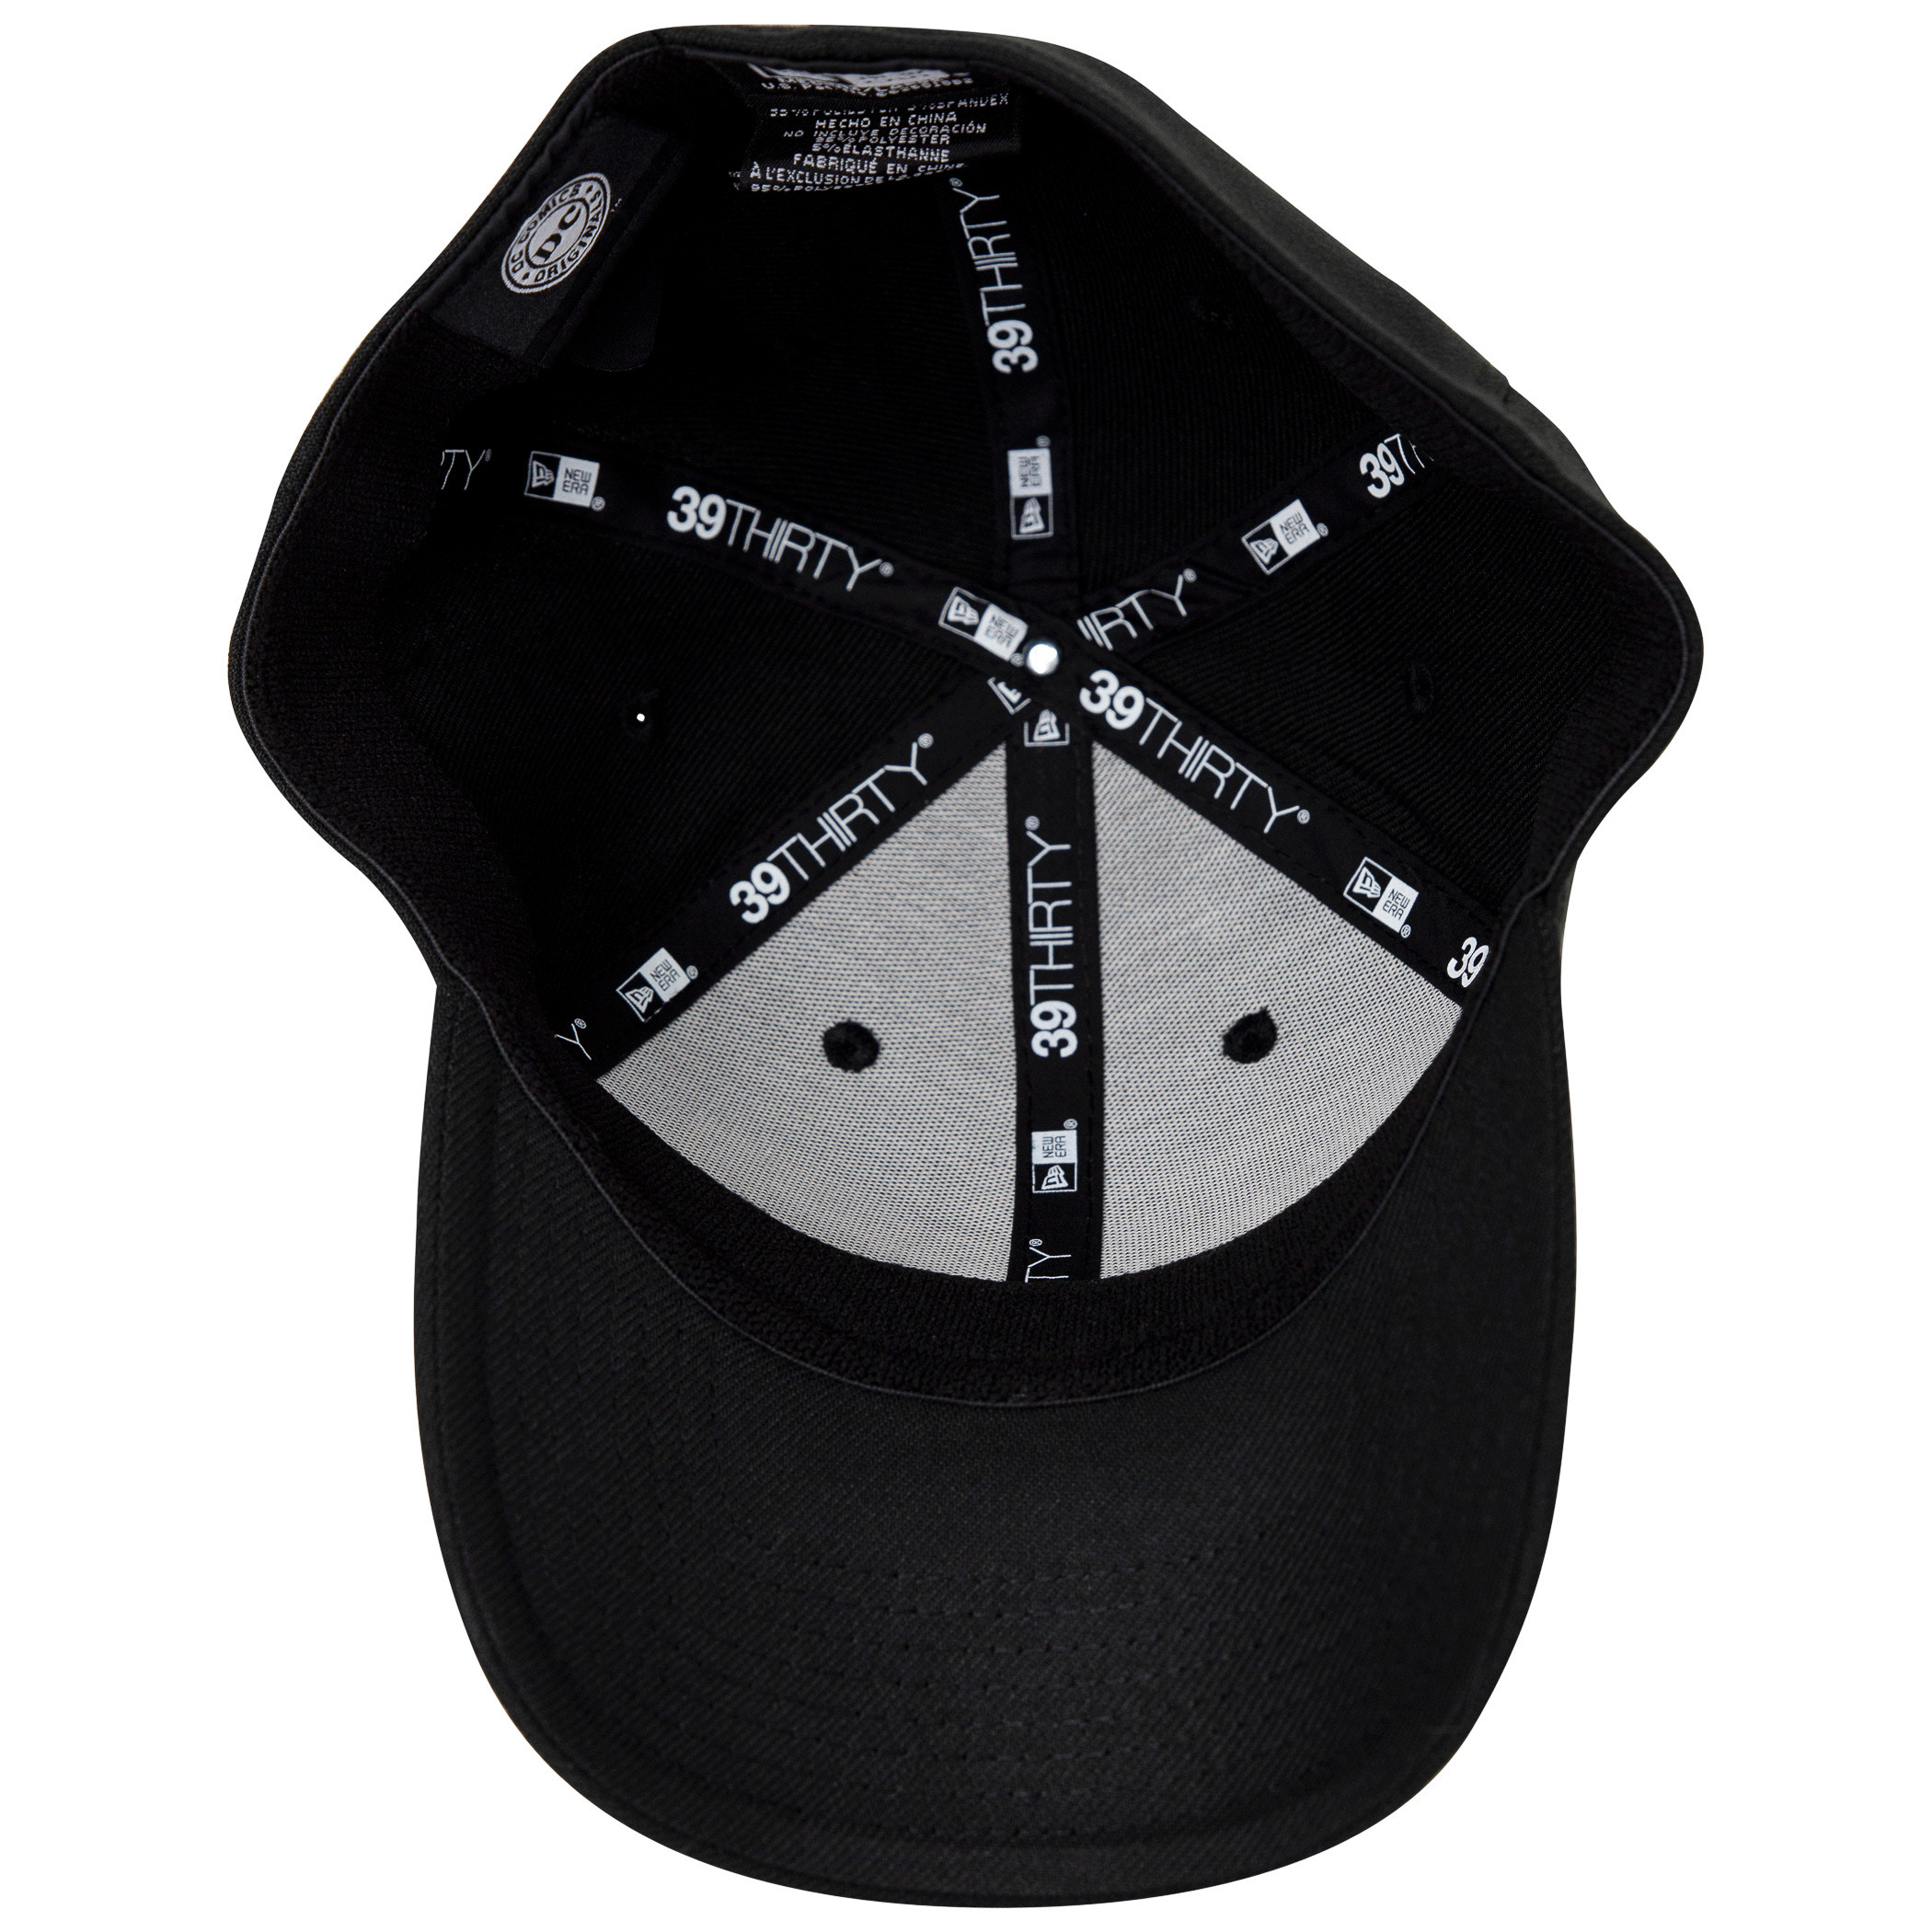 The Joker Text New Era 39Thirty Fitted Hat